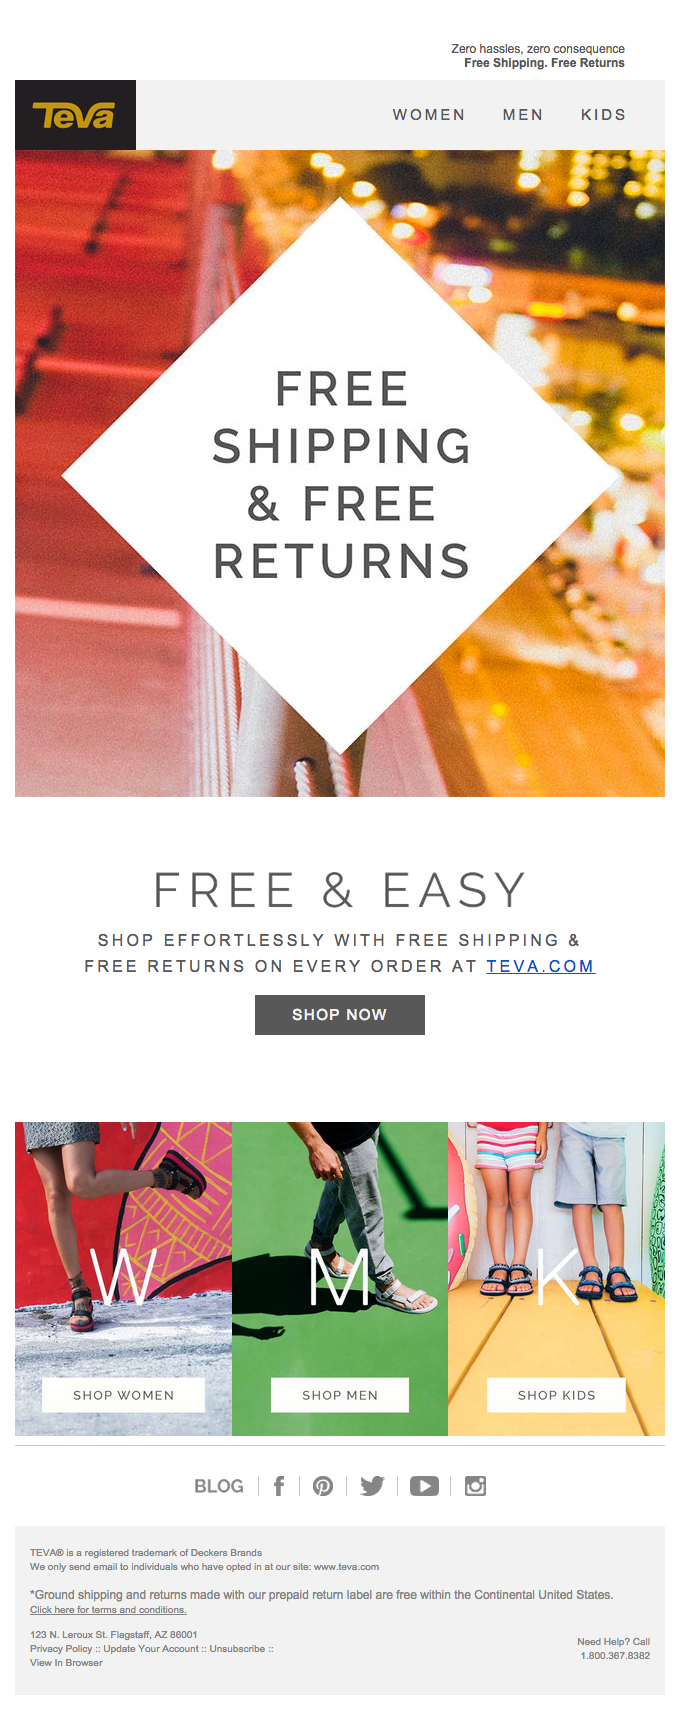 Free Shipping, Free Returns: Easy, Risk-Free Shopping With Teva